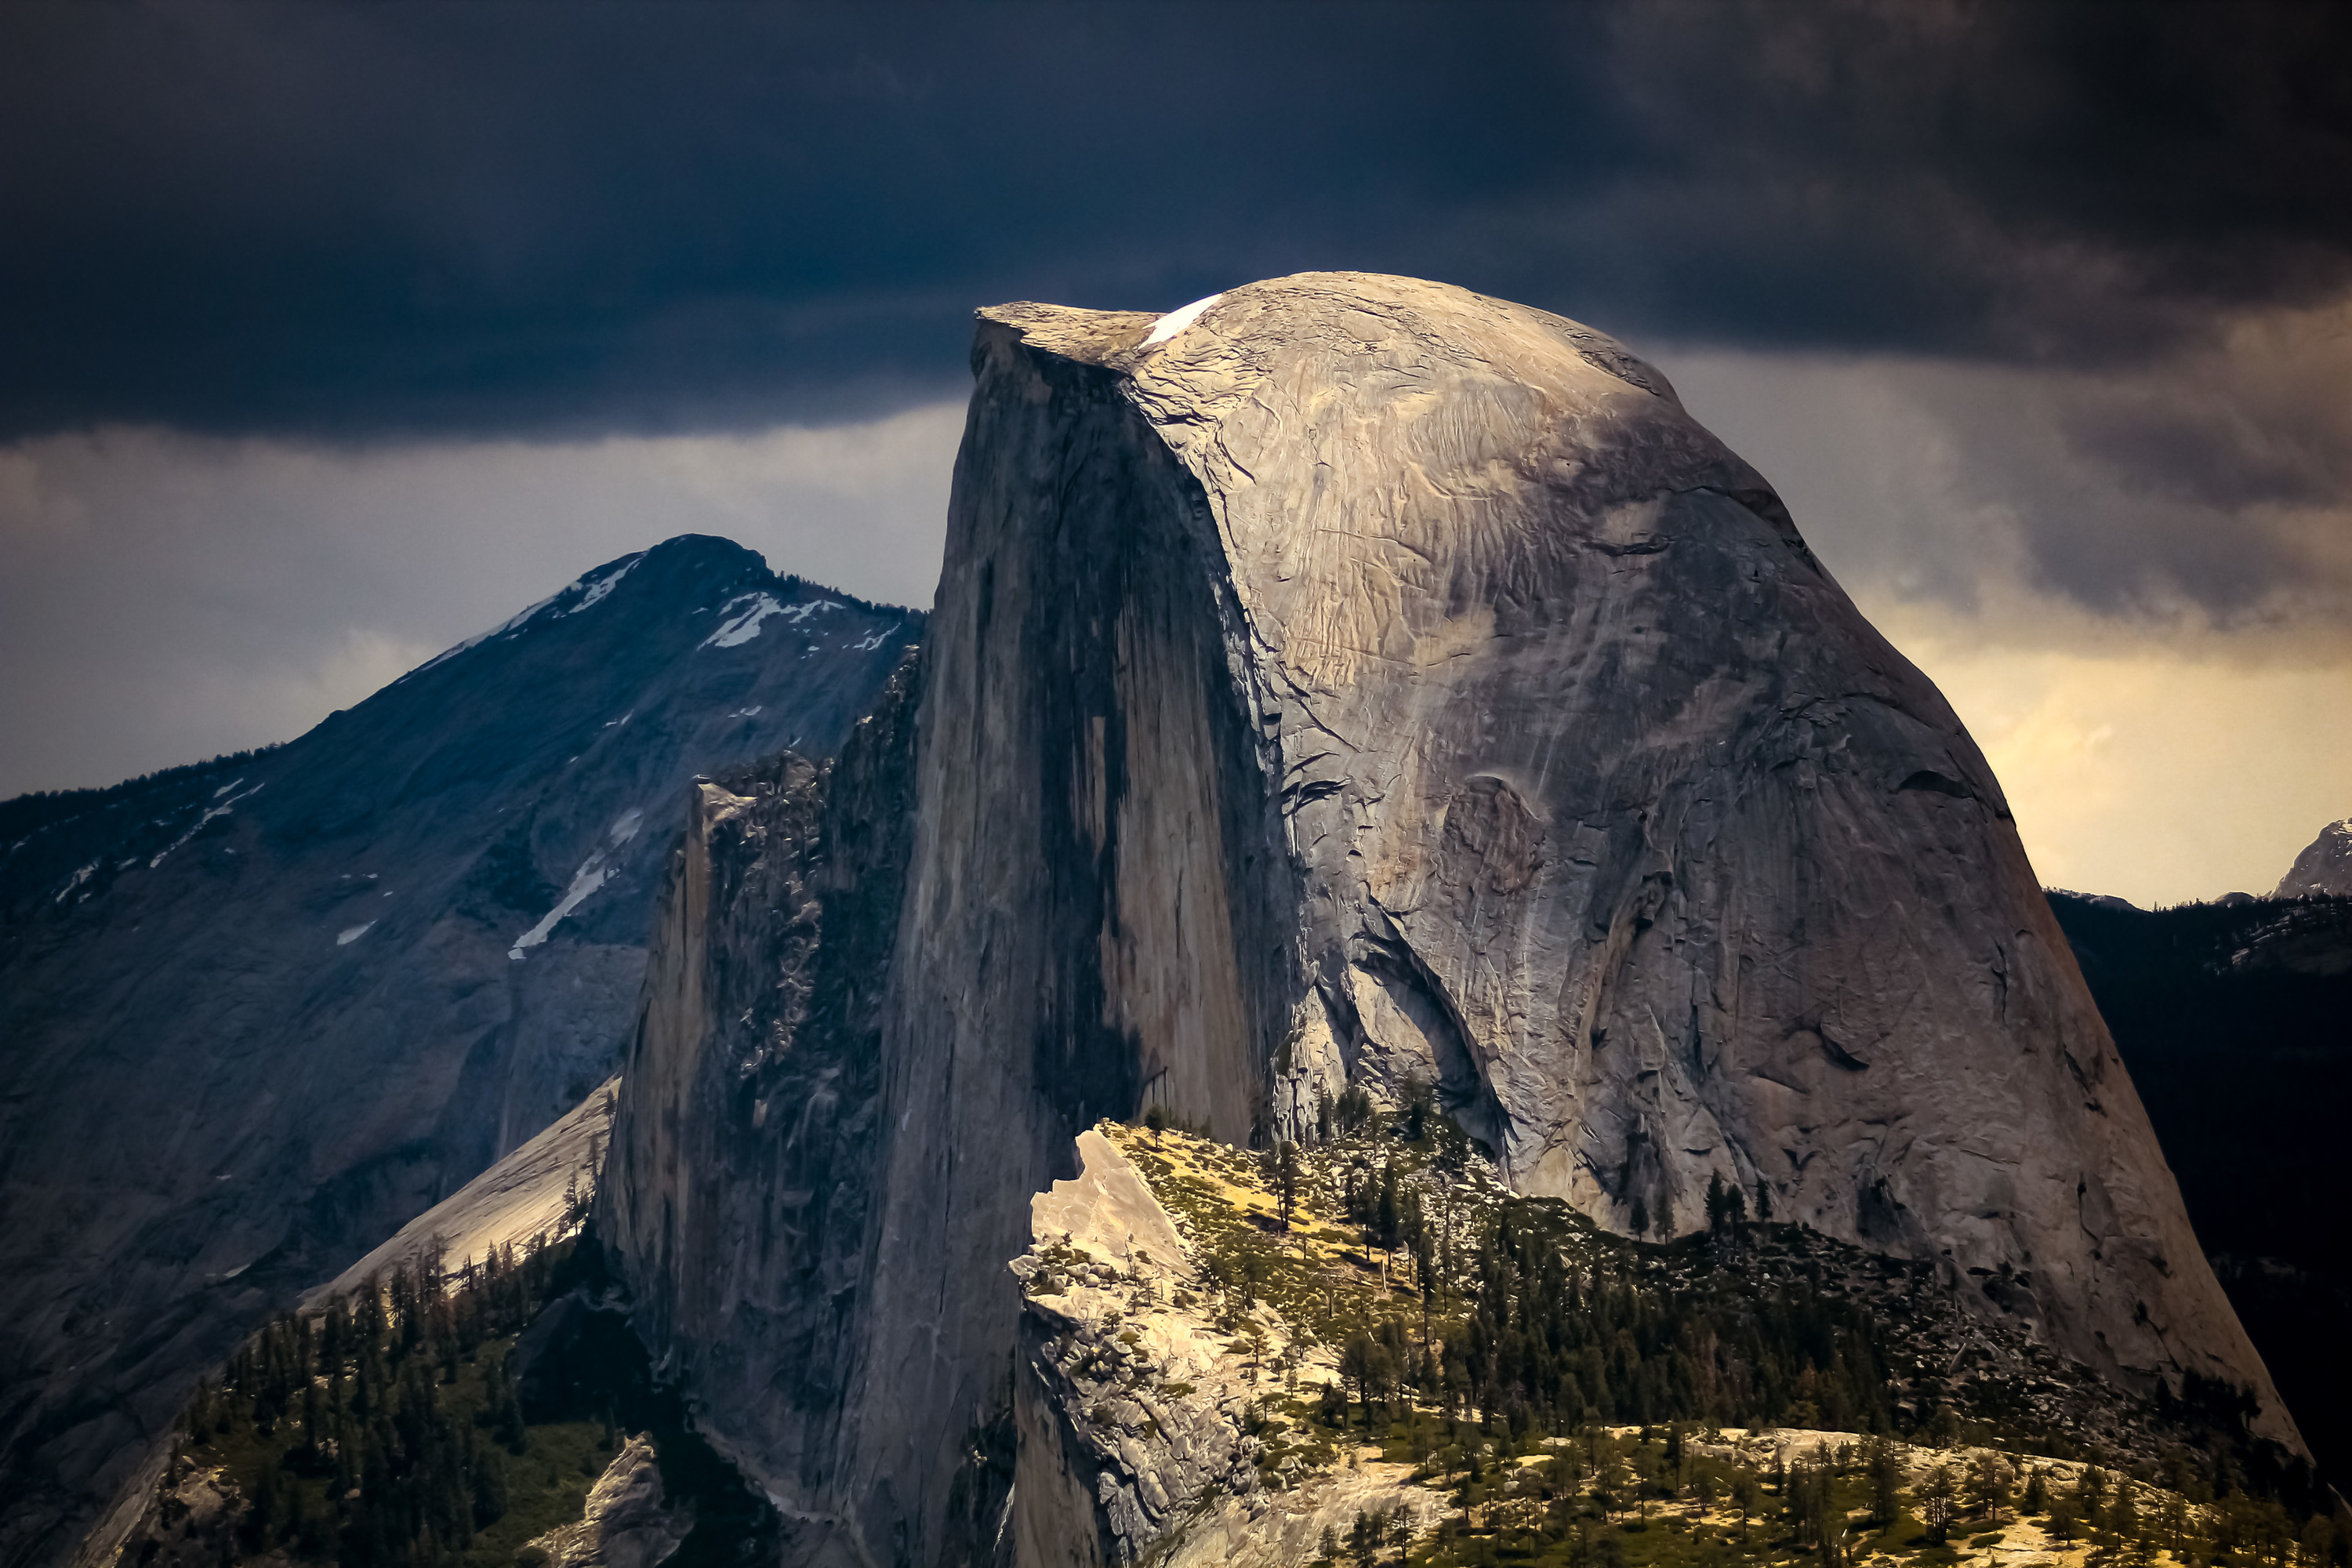 <div class='title'>           Half Dome         </div>                 <div class='description'>           Half Dome as seen from Glacier Point. Yosemite National Park, California. May, 2016.         </div>